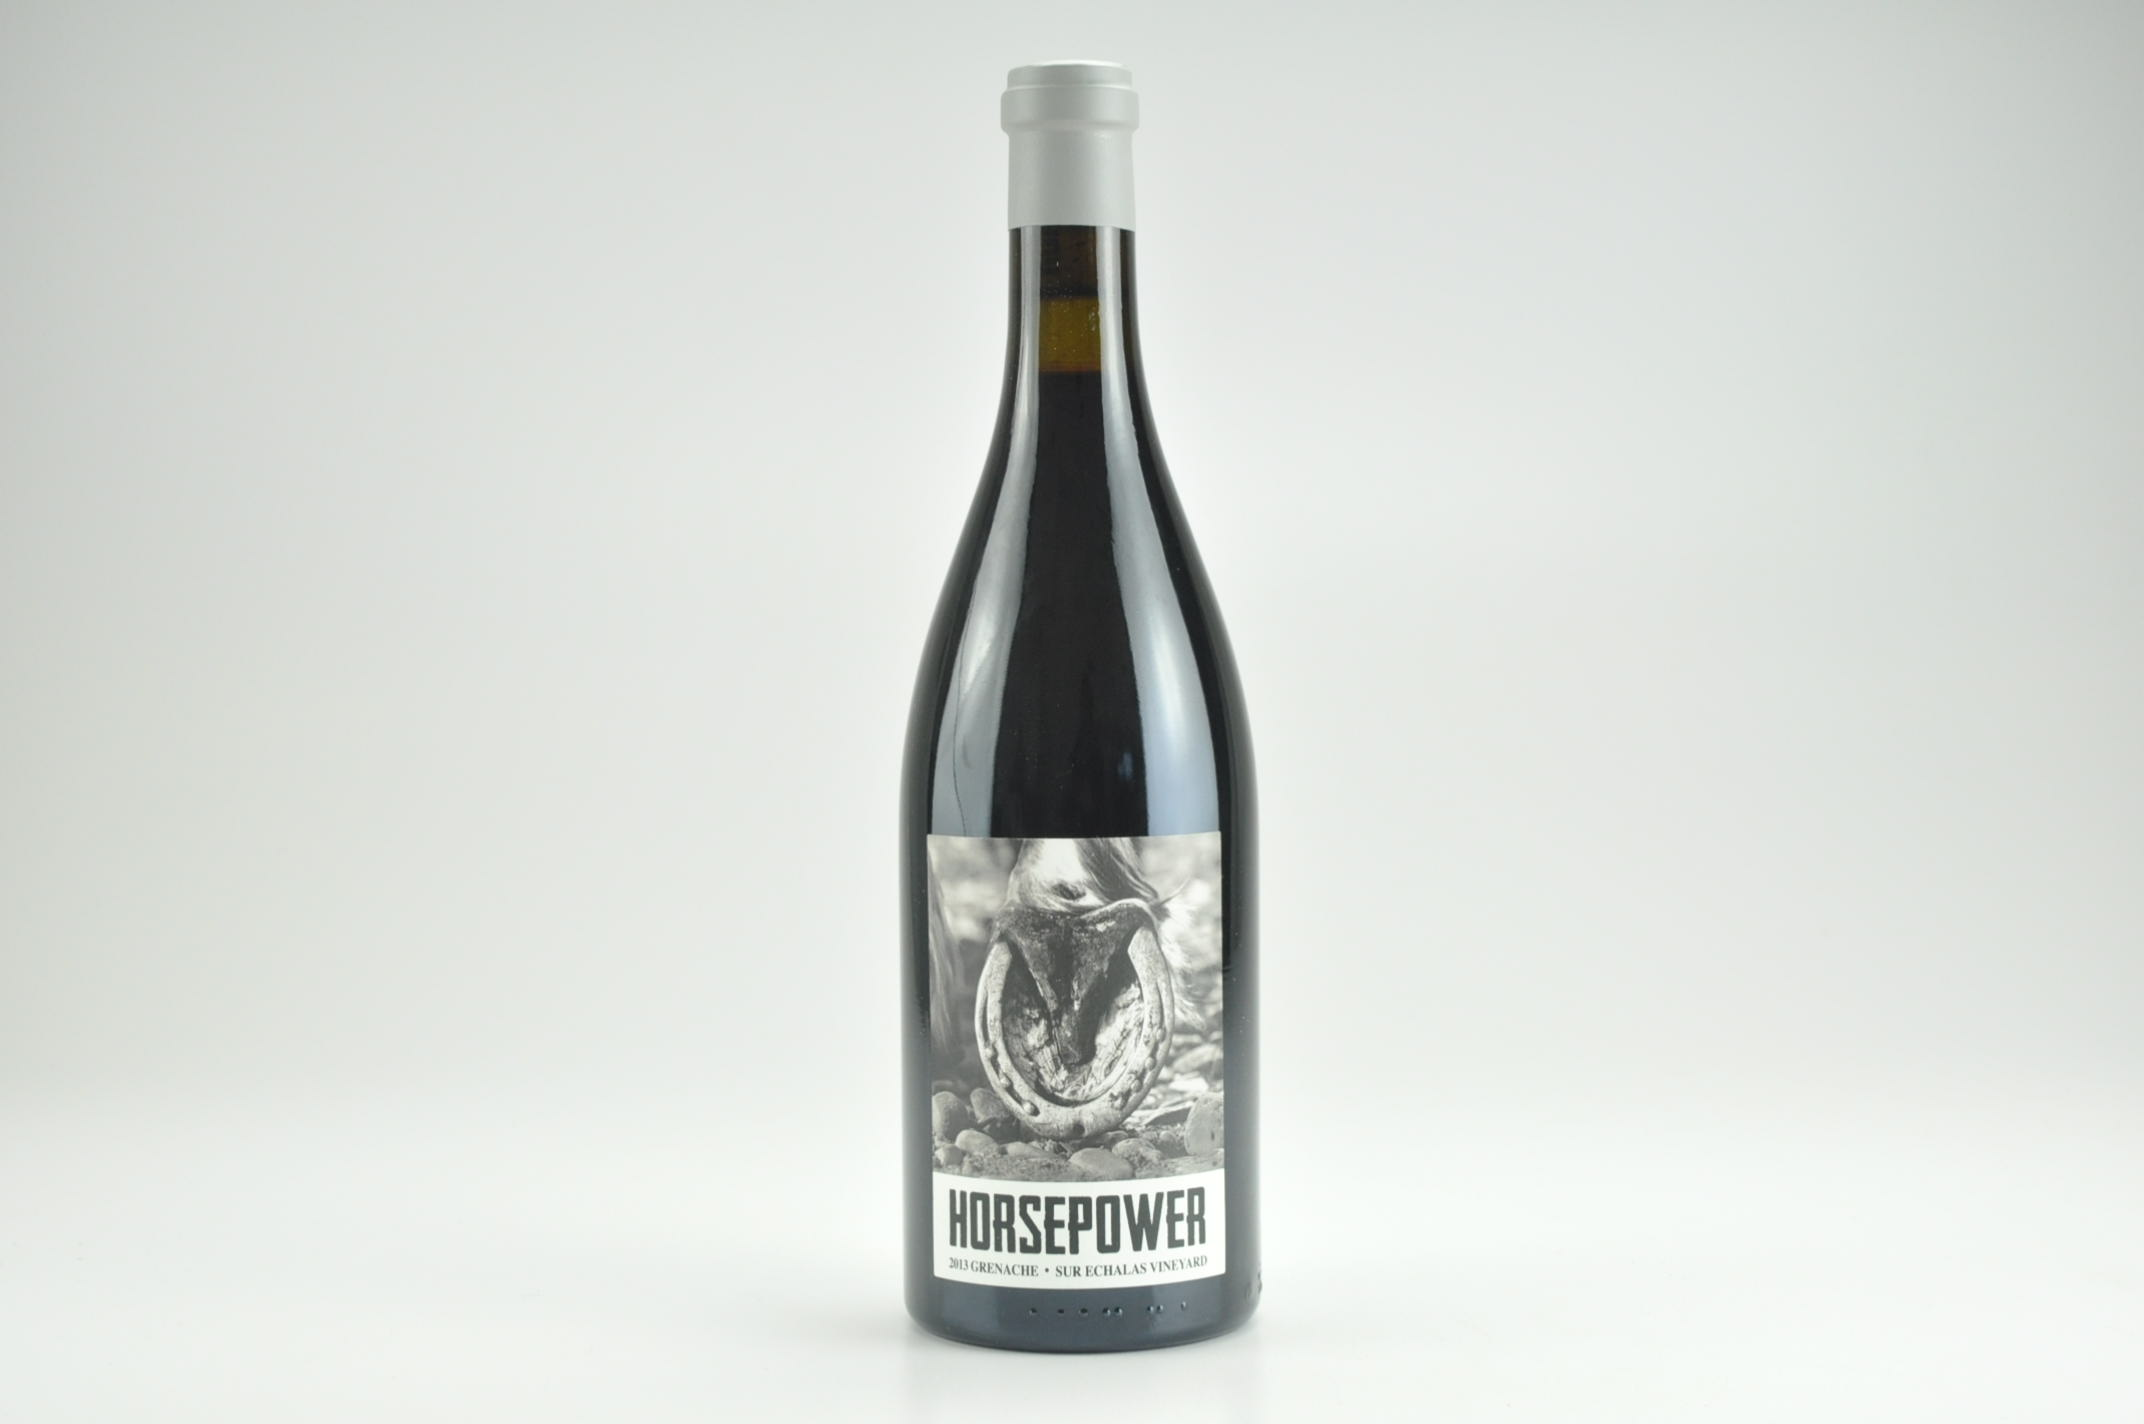 2013 Horsepower Grenache Sur Echalas Vineyard, Walla Walla Valley RP--95